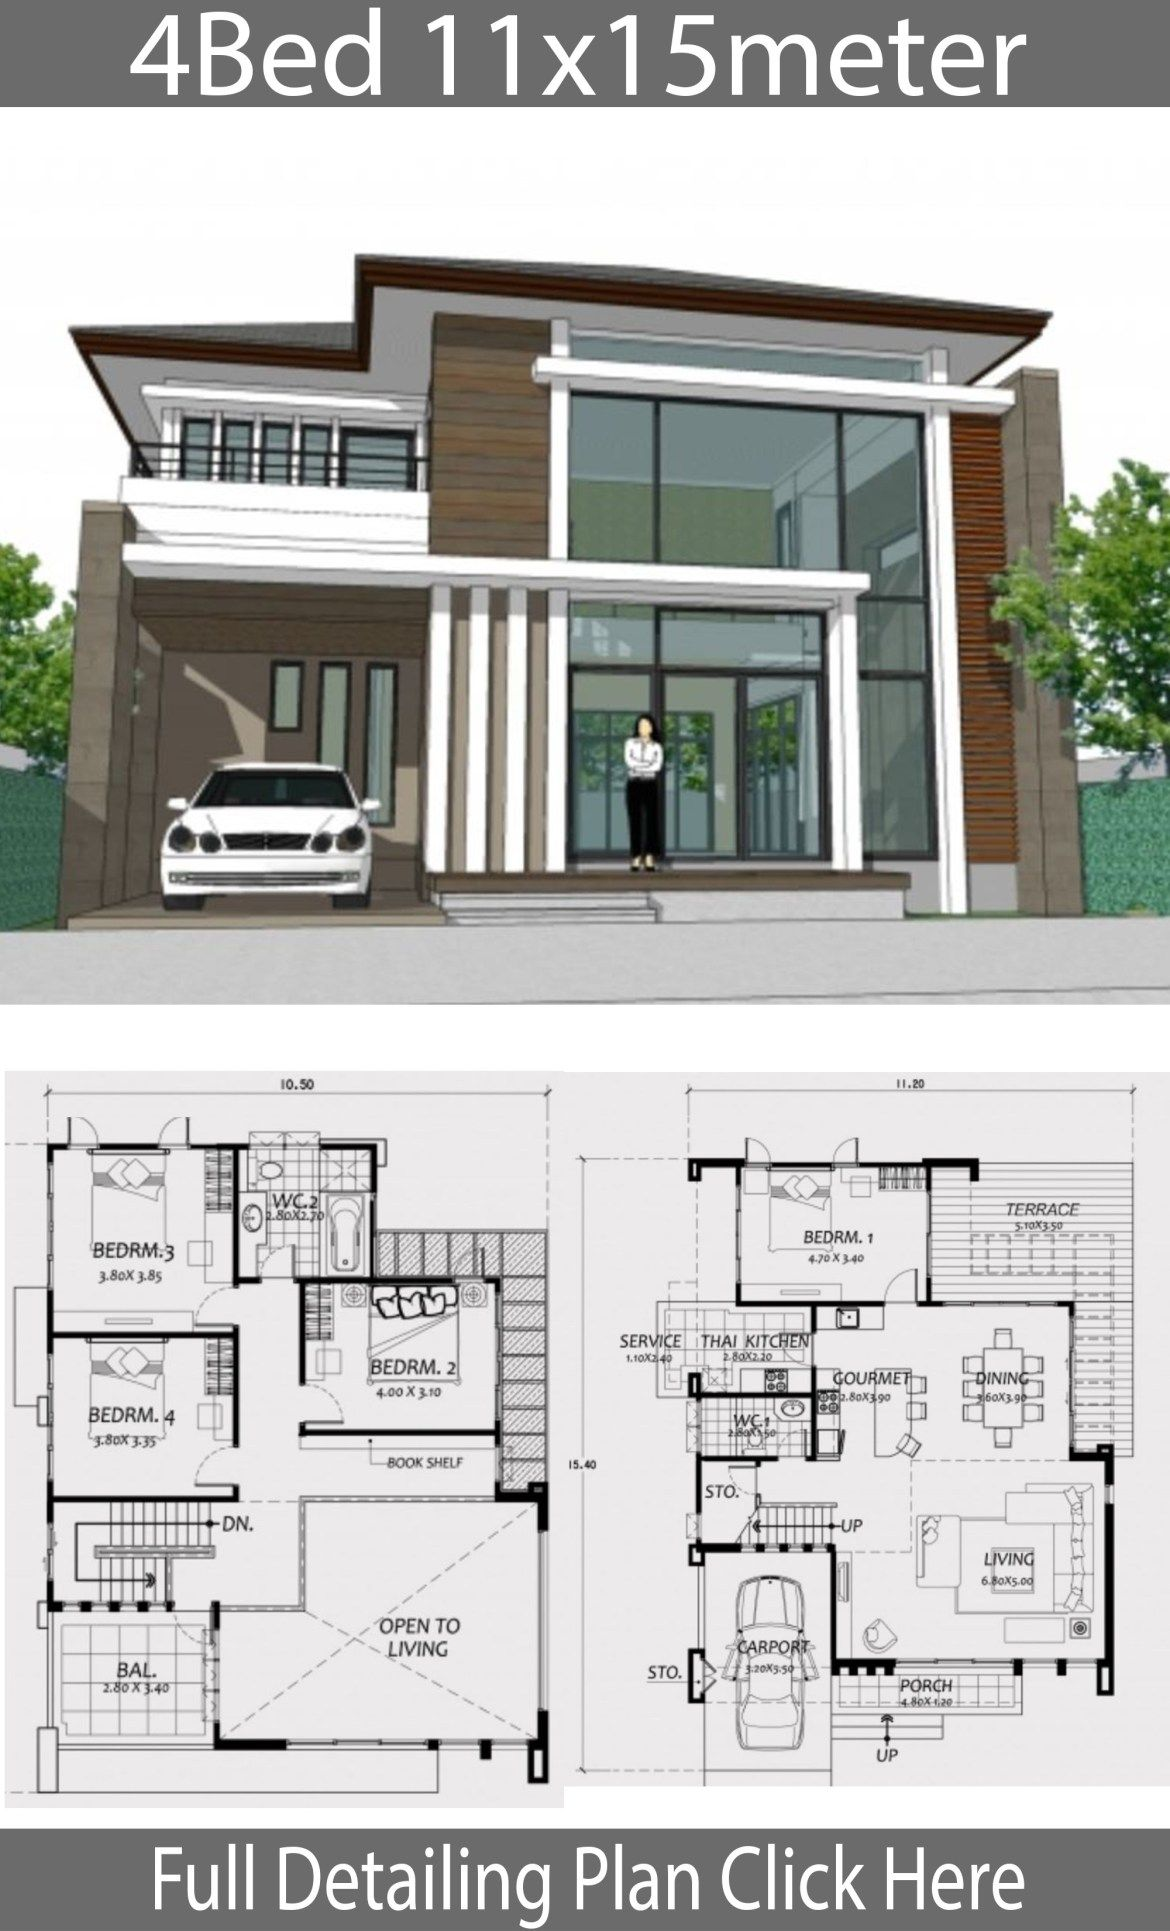 Home Design 11x15m With 4 Bedrooms Home Planssearch House Plans Modern House Plans House Design